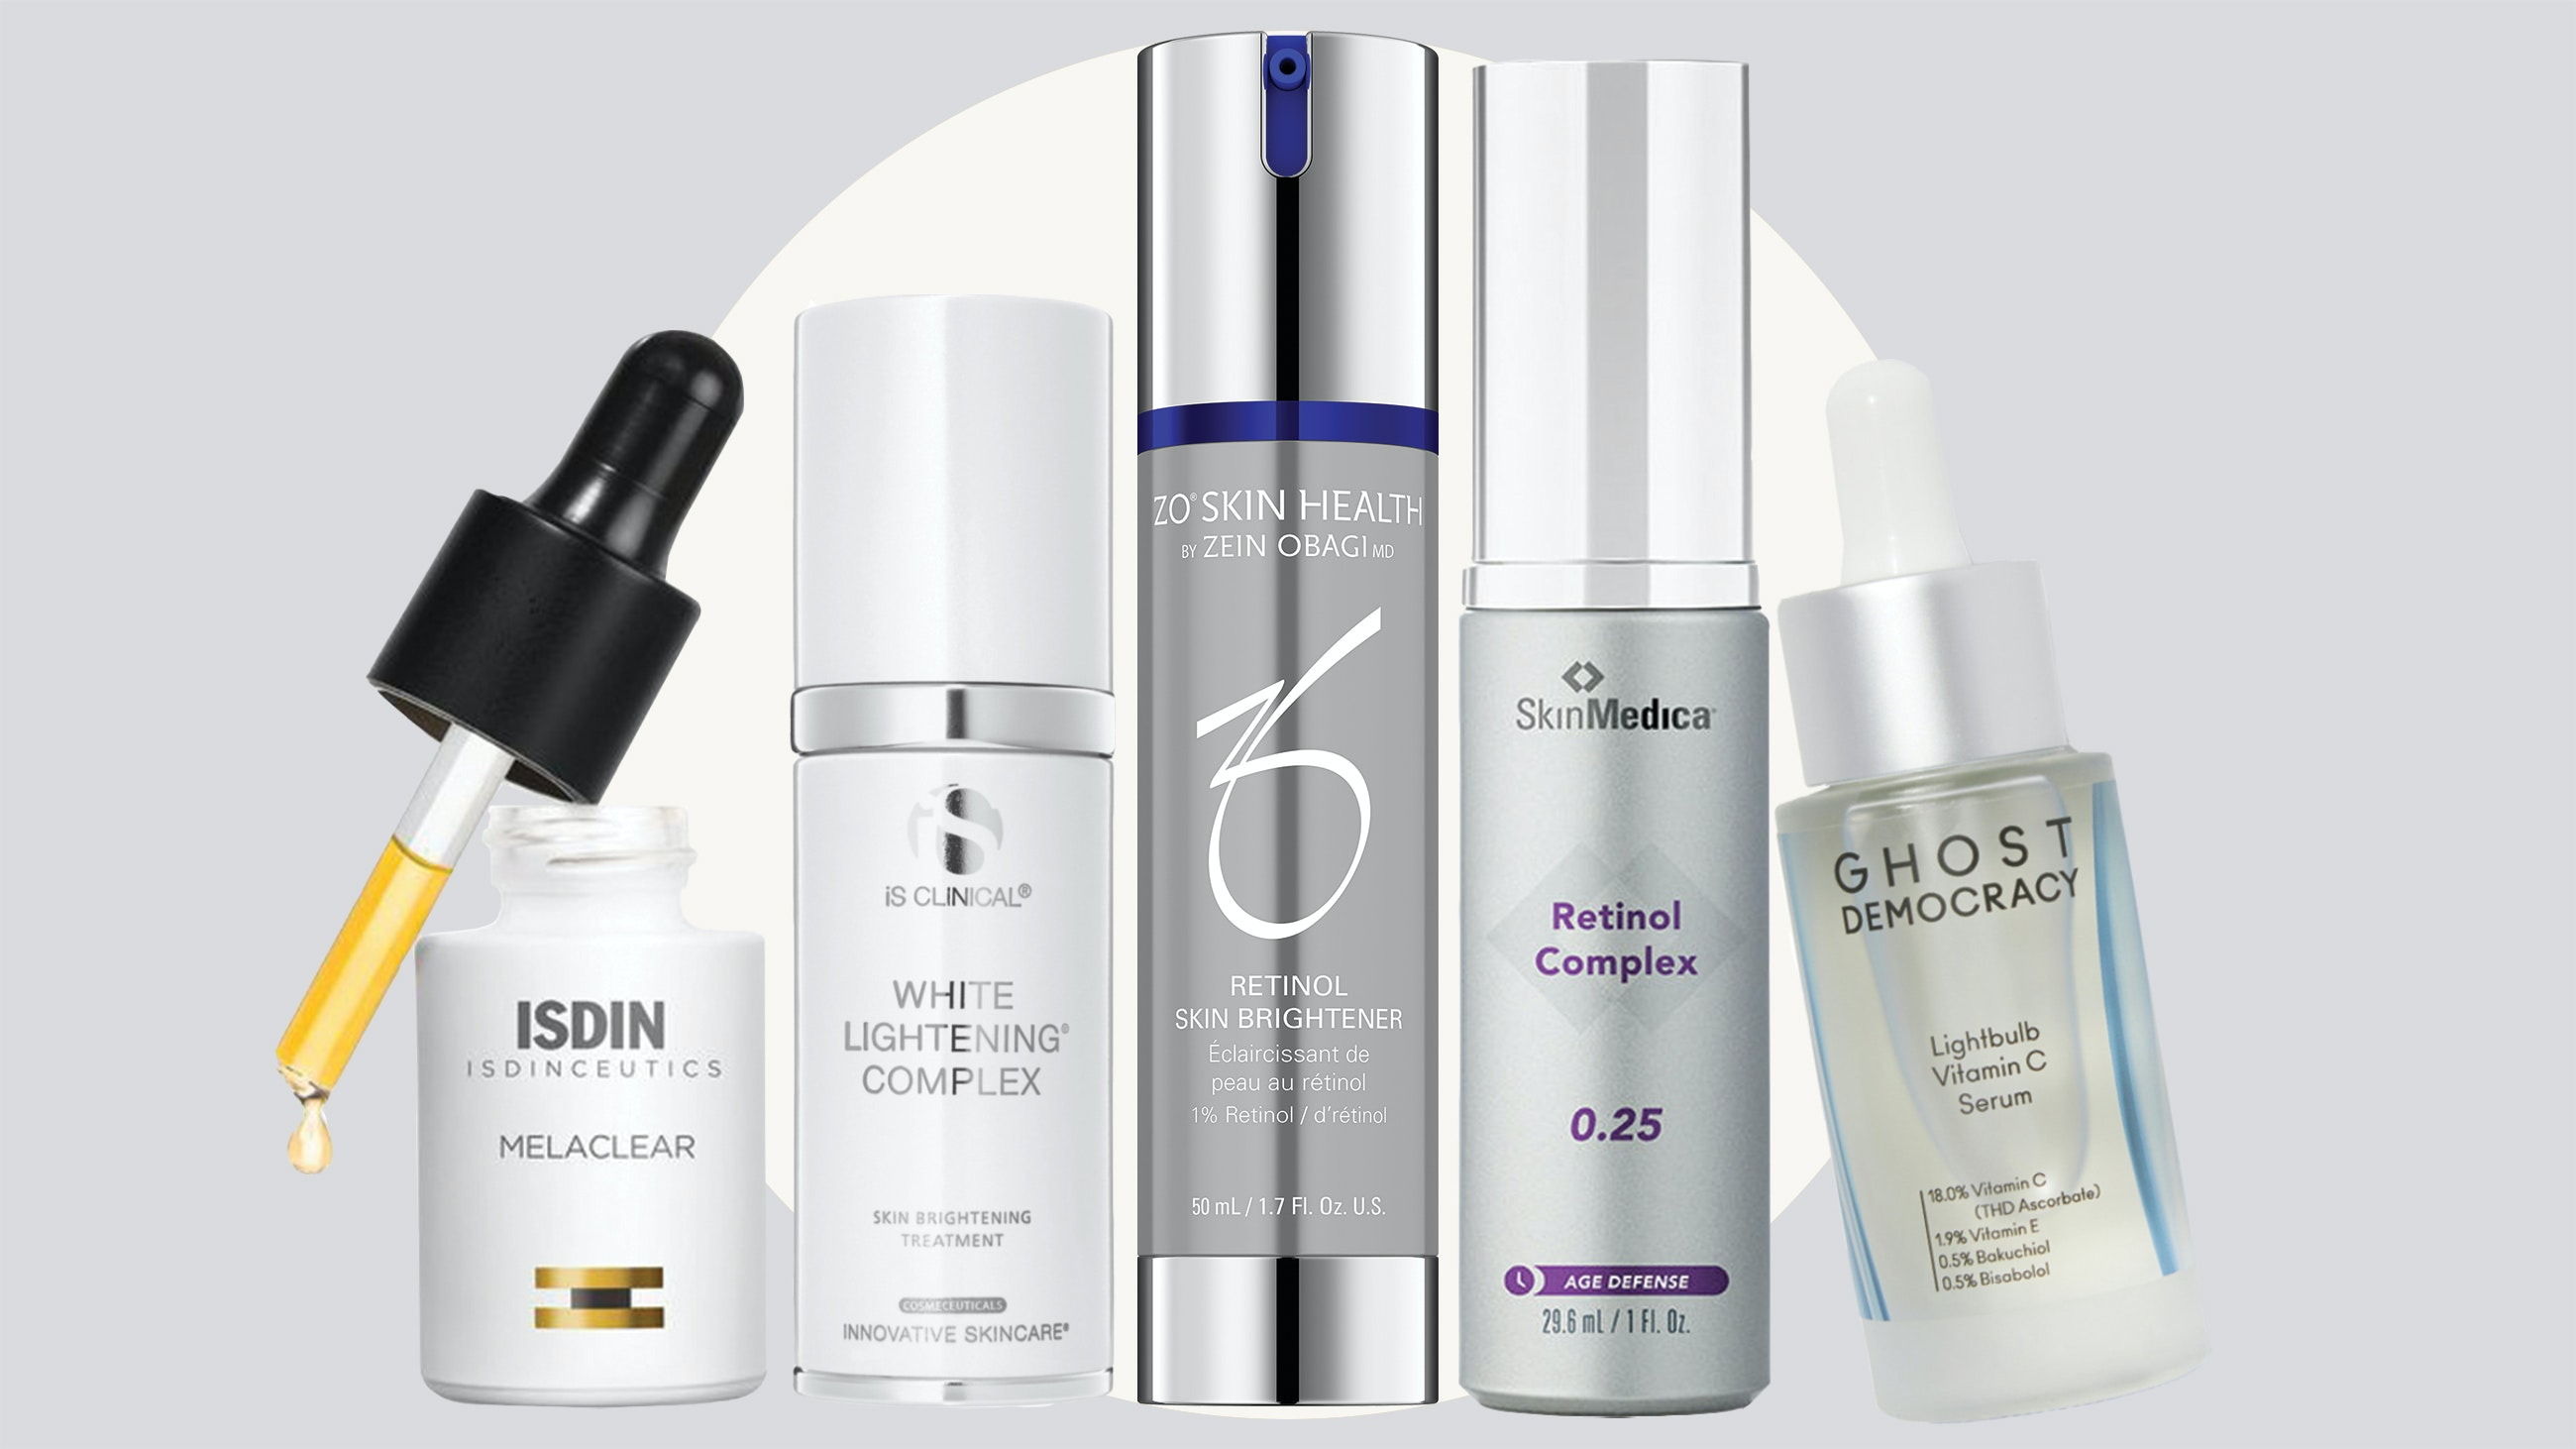 Help Fade Away Frustrating Dark Spots With These Doctor-Recommended Products